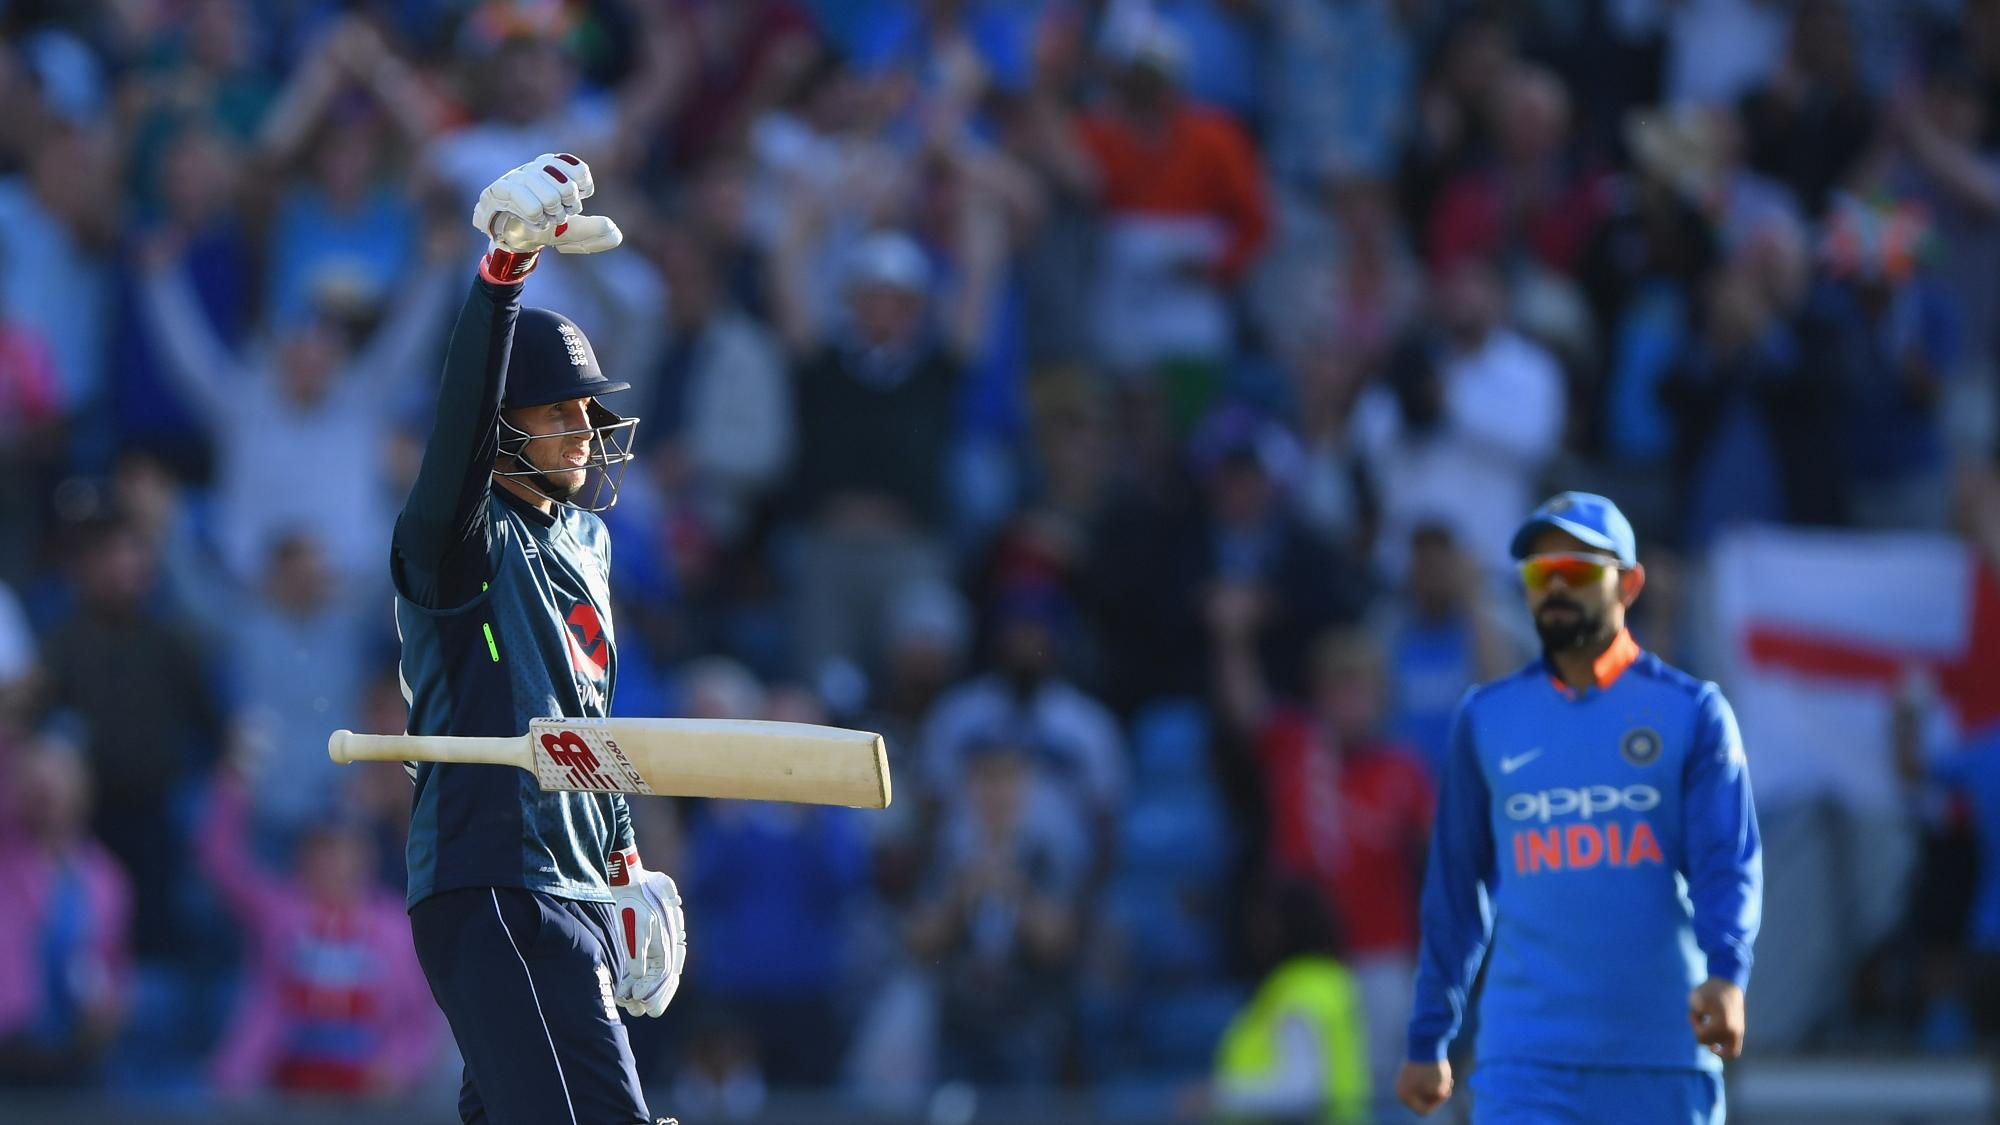 'Most embarrassing thing I've done' – Joe Root on mic-drop celebration